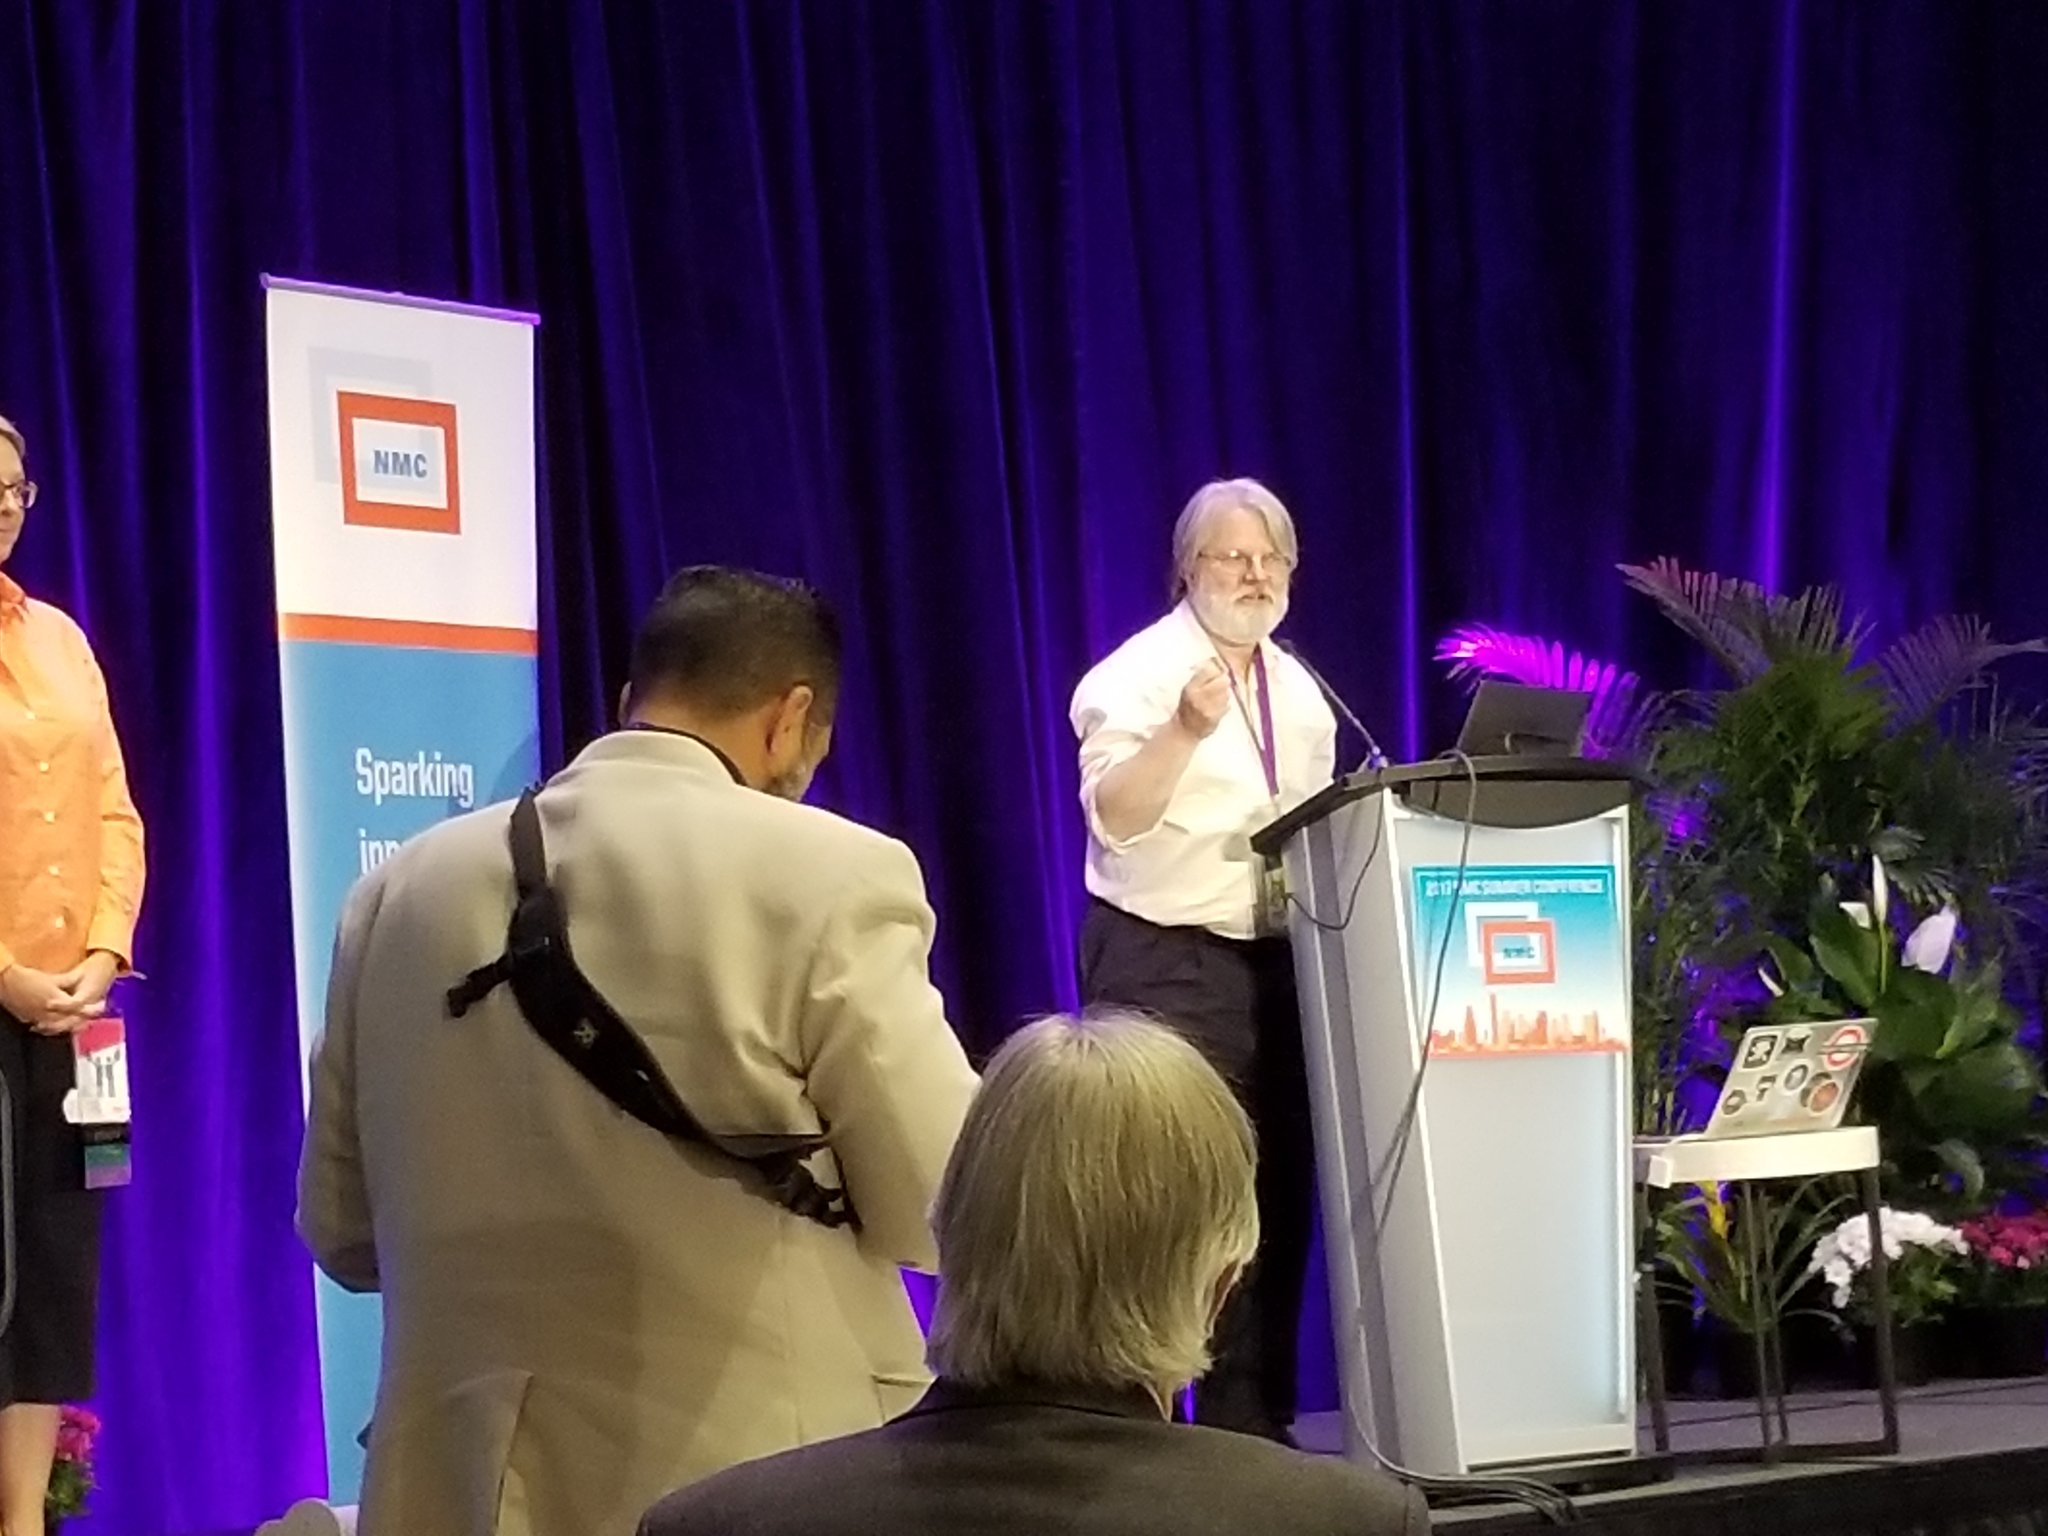 New Board chair, @GardnerCampbell , introduced @closing session of #NMC17 https://t.co/AdndsHsjw4